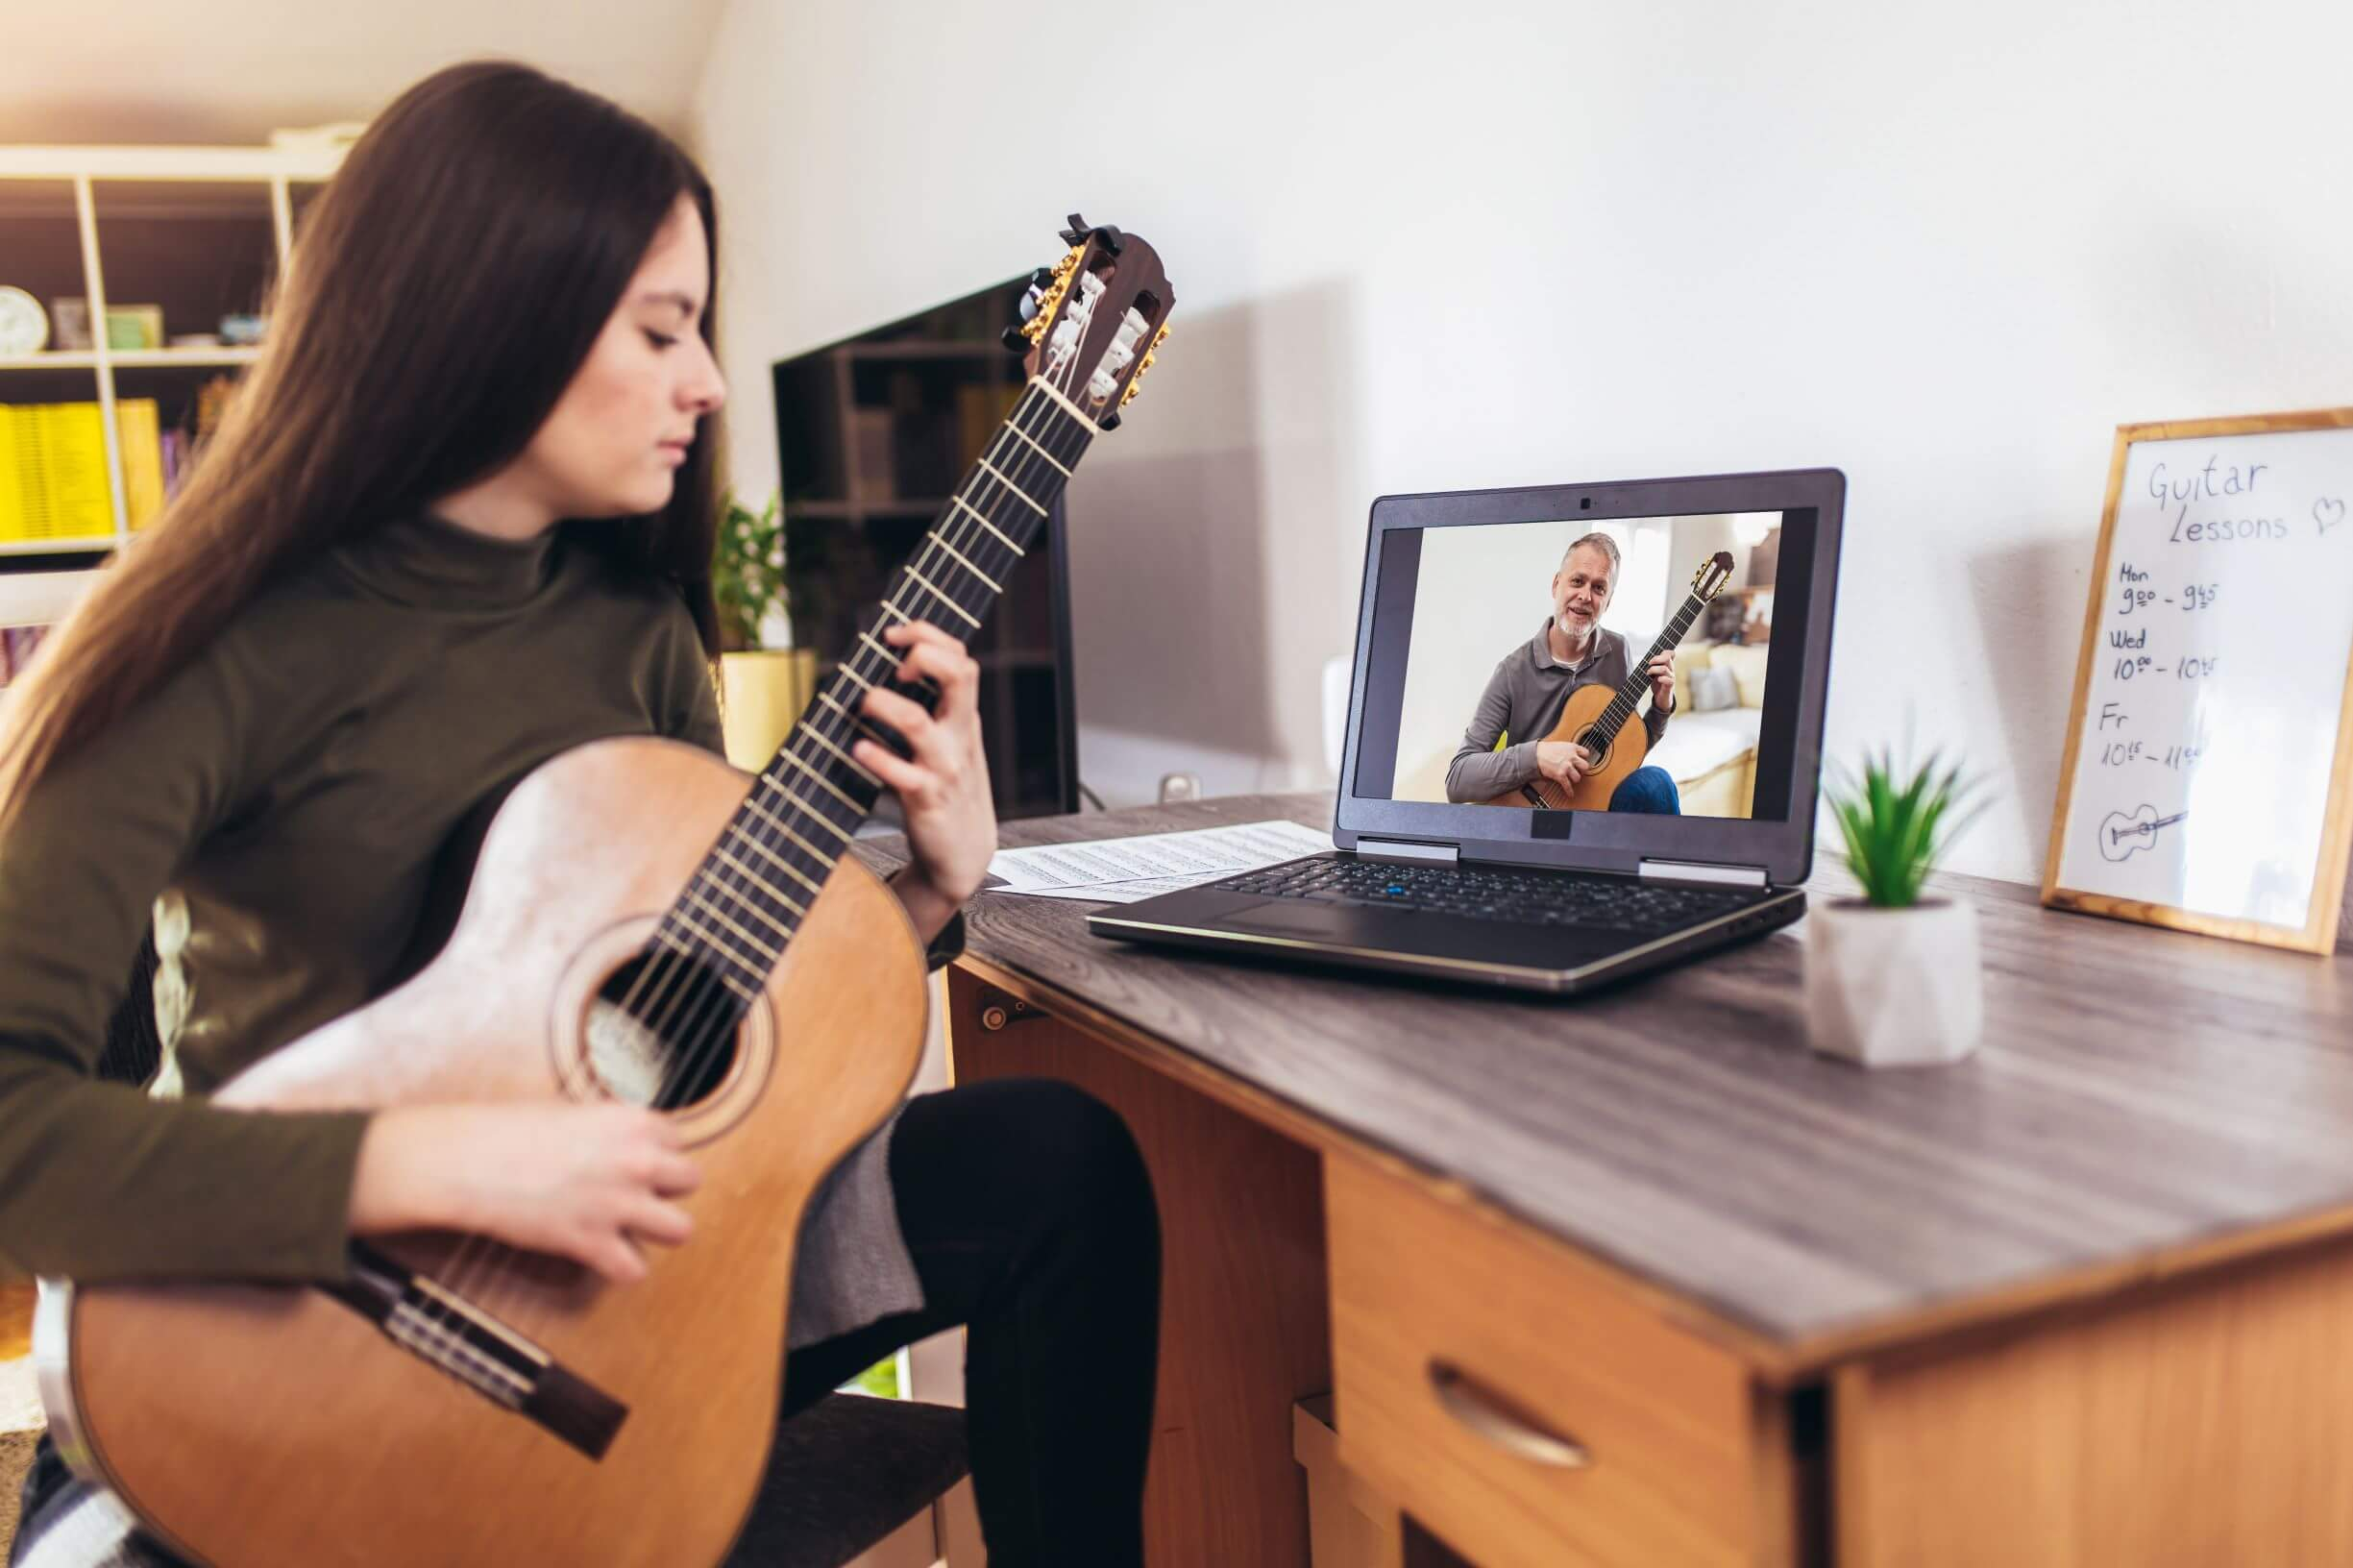 Image shows a girl learning guitar through a video.